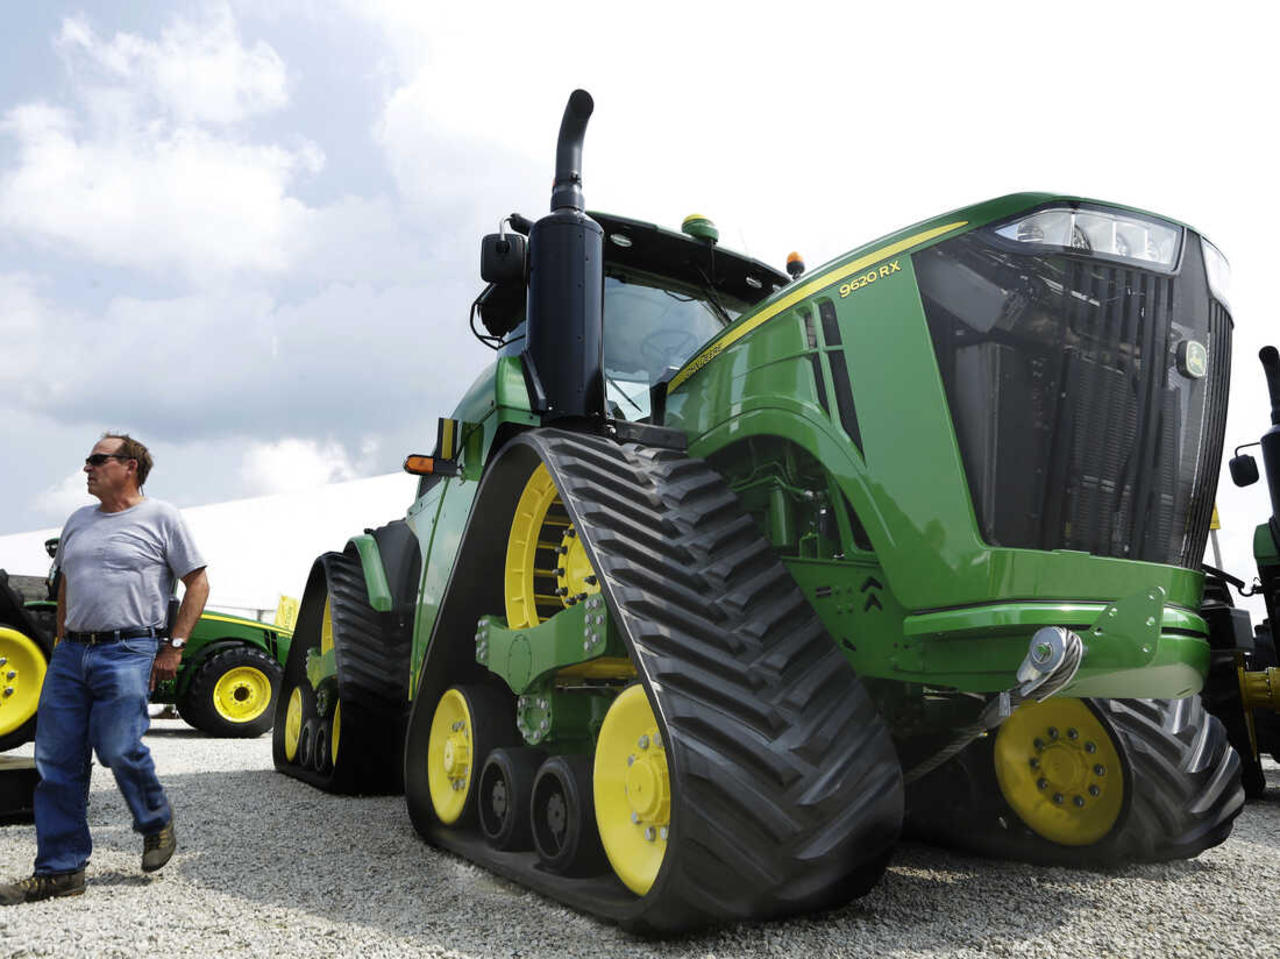 Over 10,000 Deere & Co. Workers Go on Strike After Failed UAW Deal